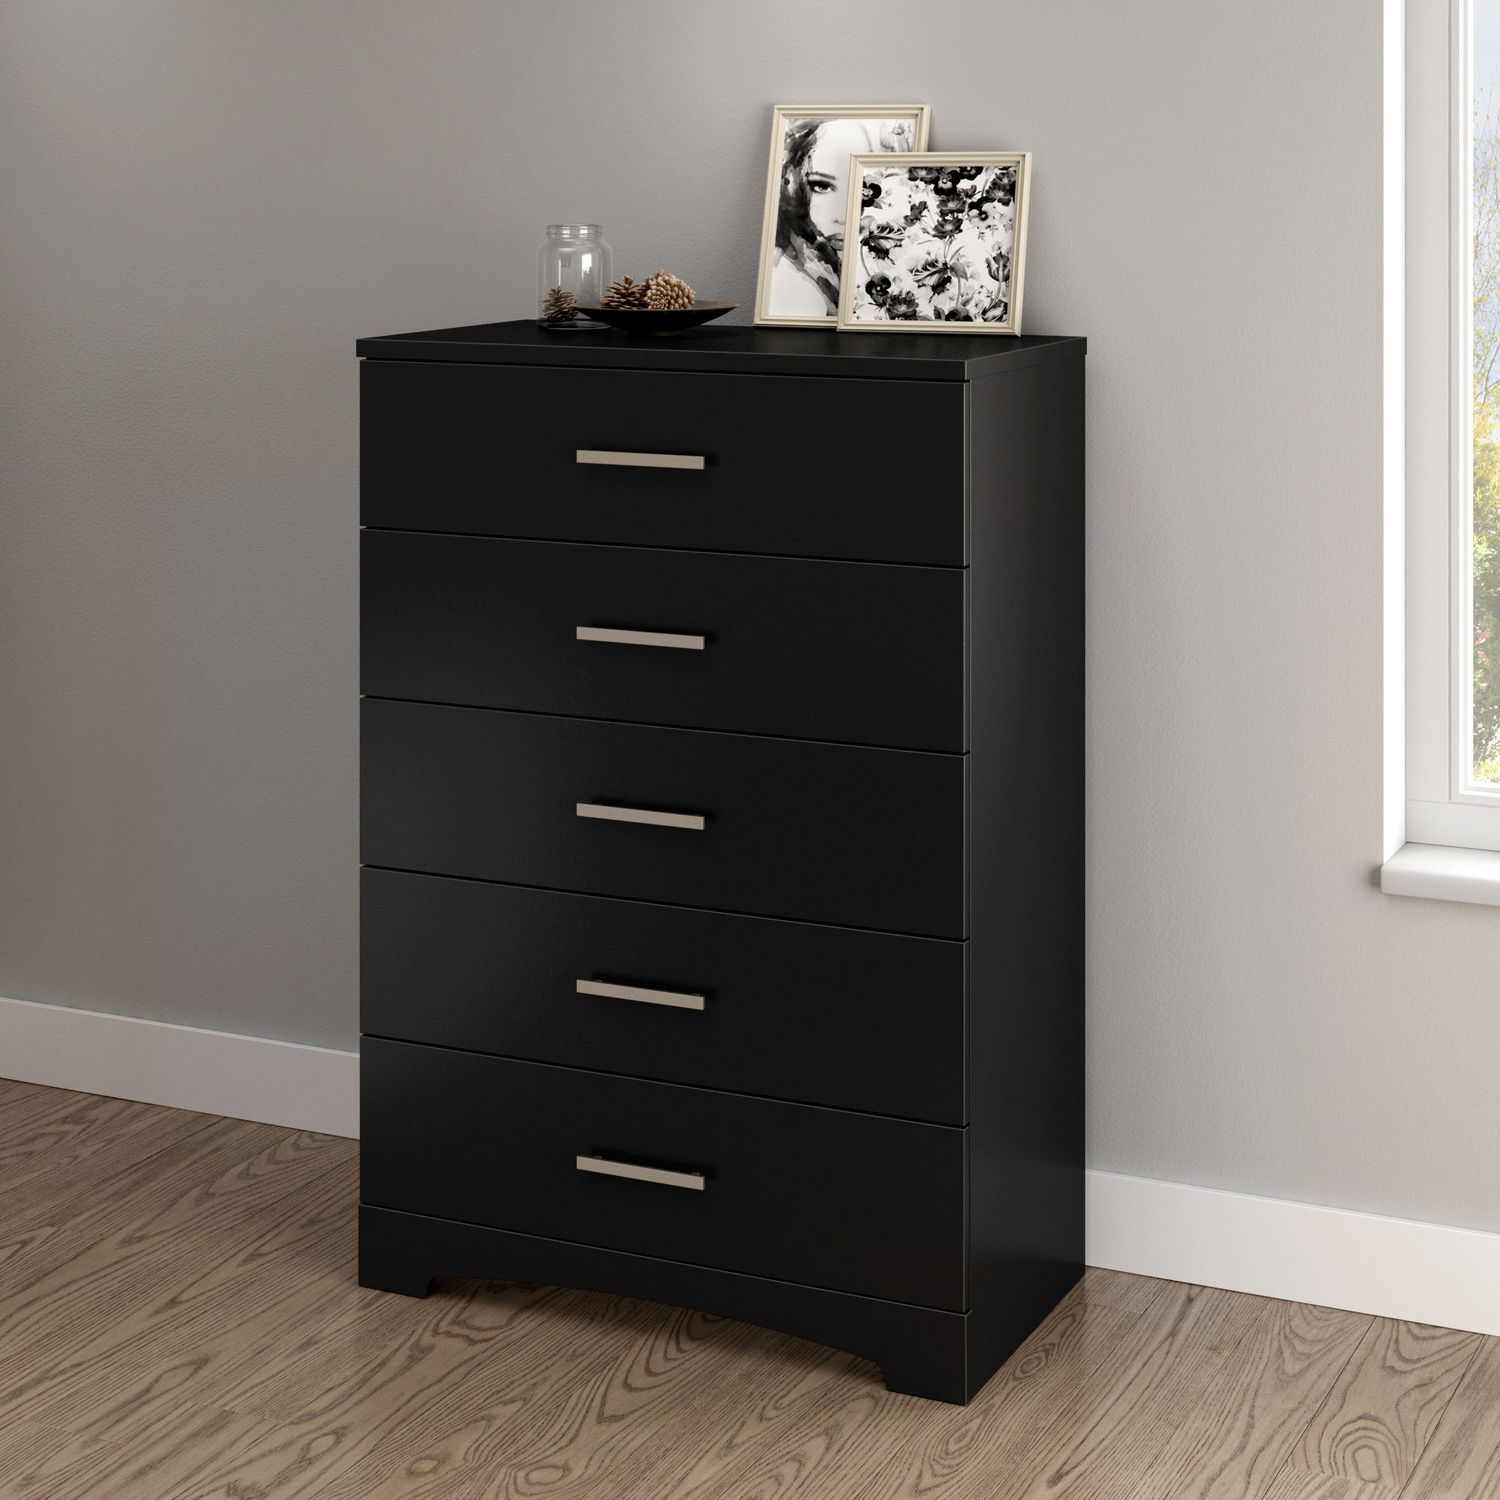 commode noire pas cher good commode barra cromo en bois. Black Bedroom Furniture Sets. Home Design Ideas